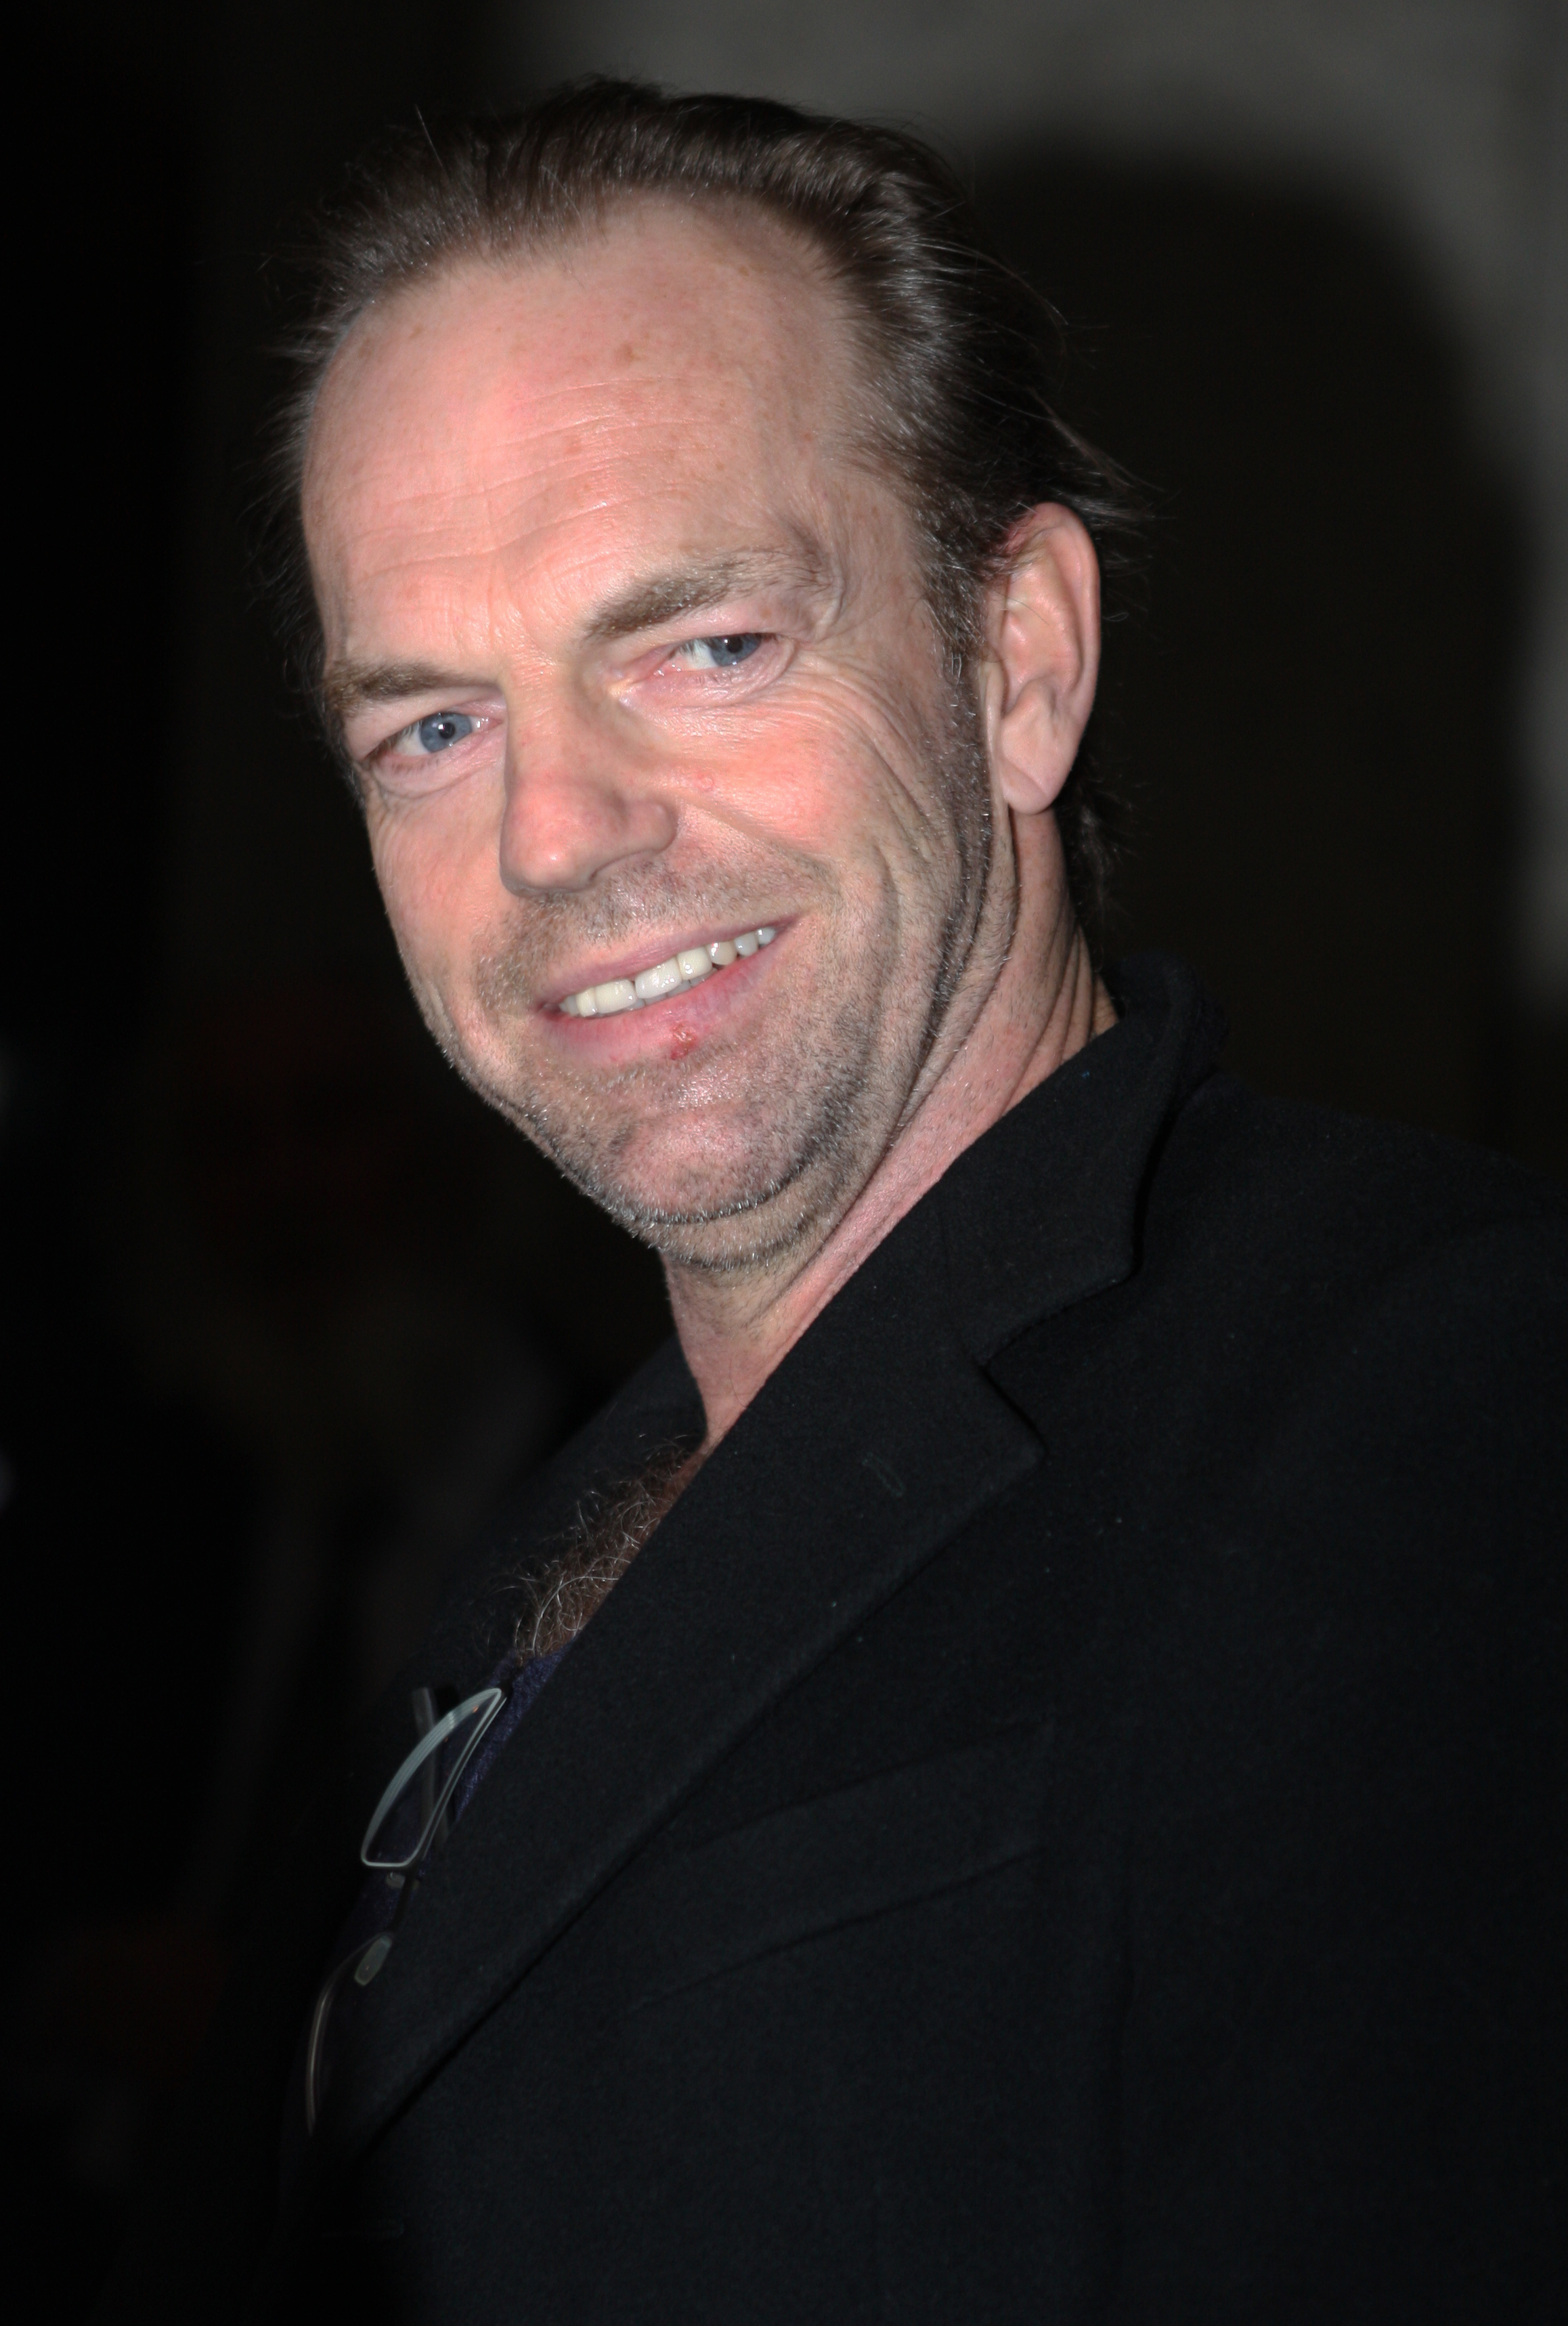 Hugo Weaving's quote #2